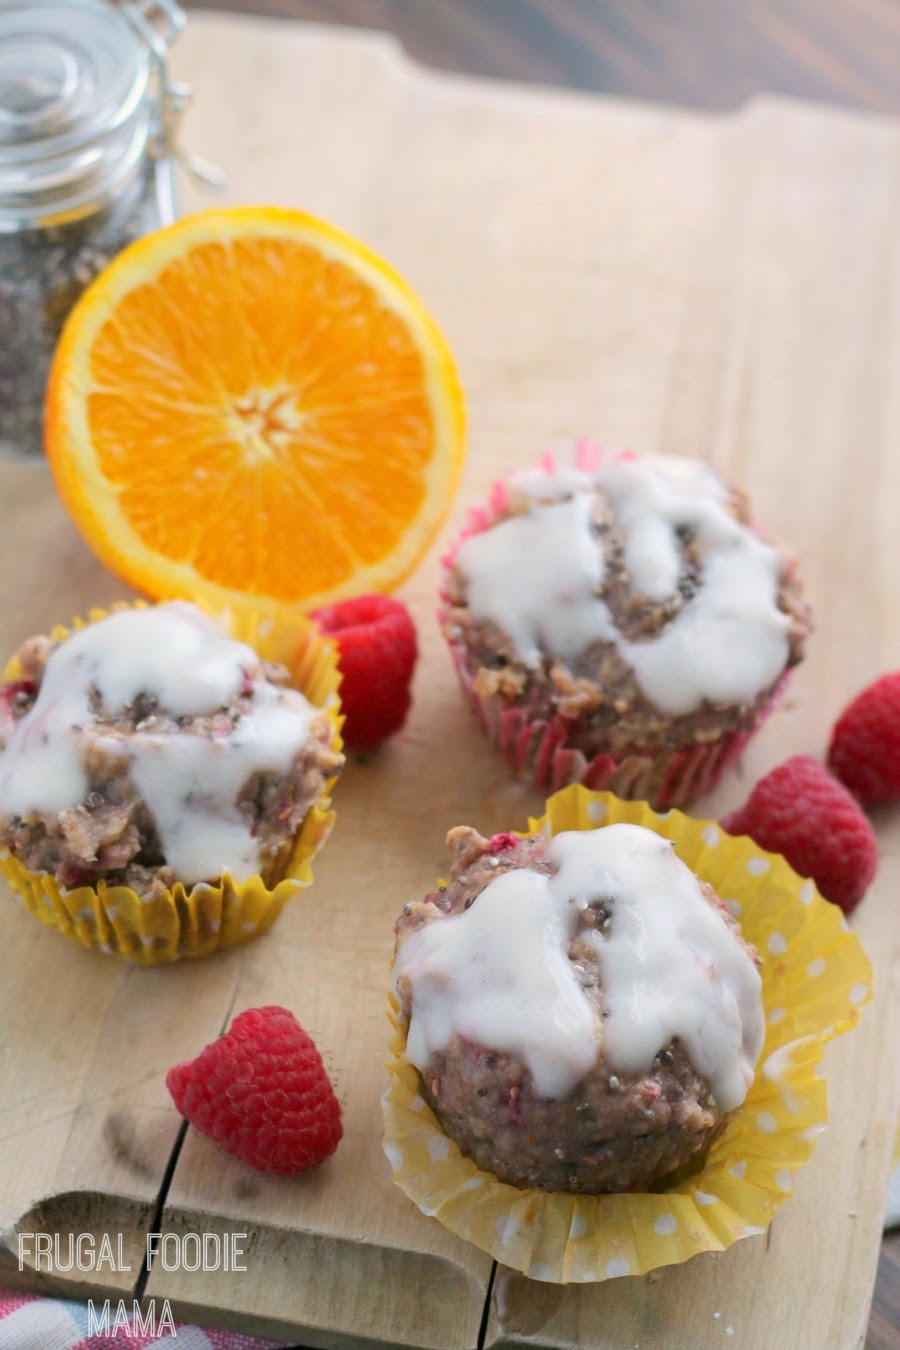 Muffins meet scones in these bright, moist, and healthy Raspberry-Orange Chia Seed Scuffins- the perfect way to start your day!